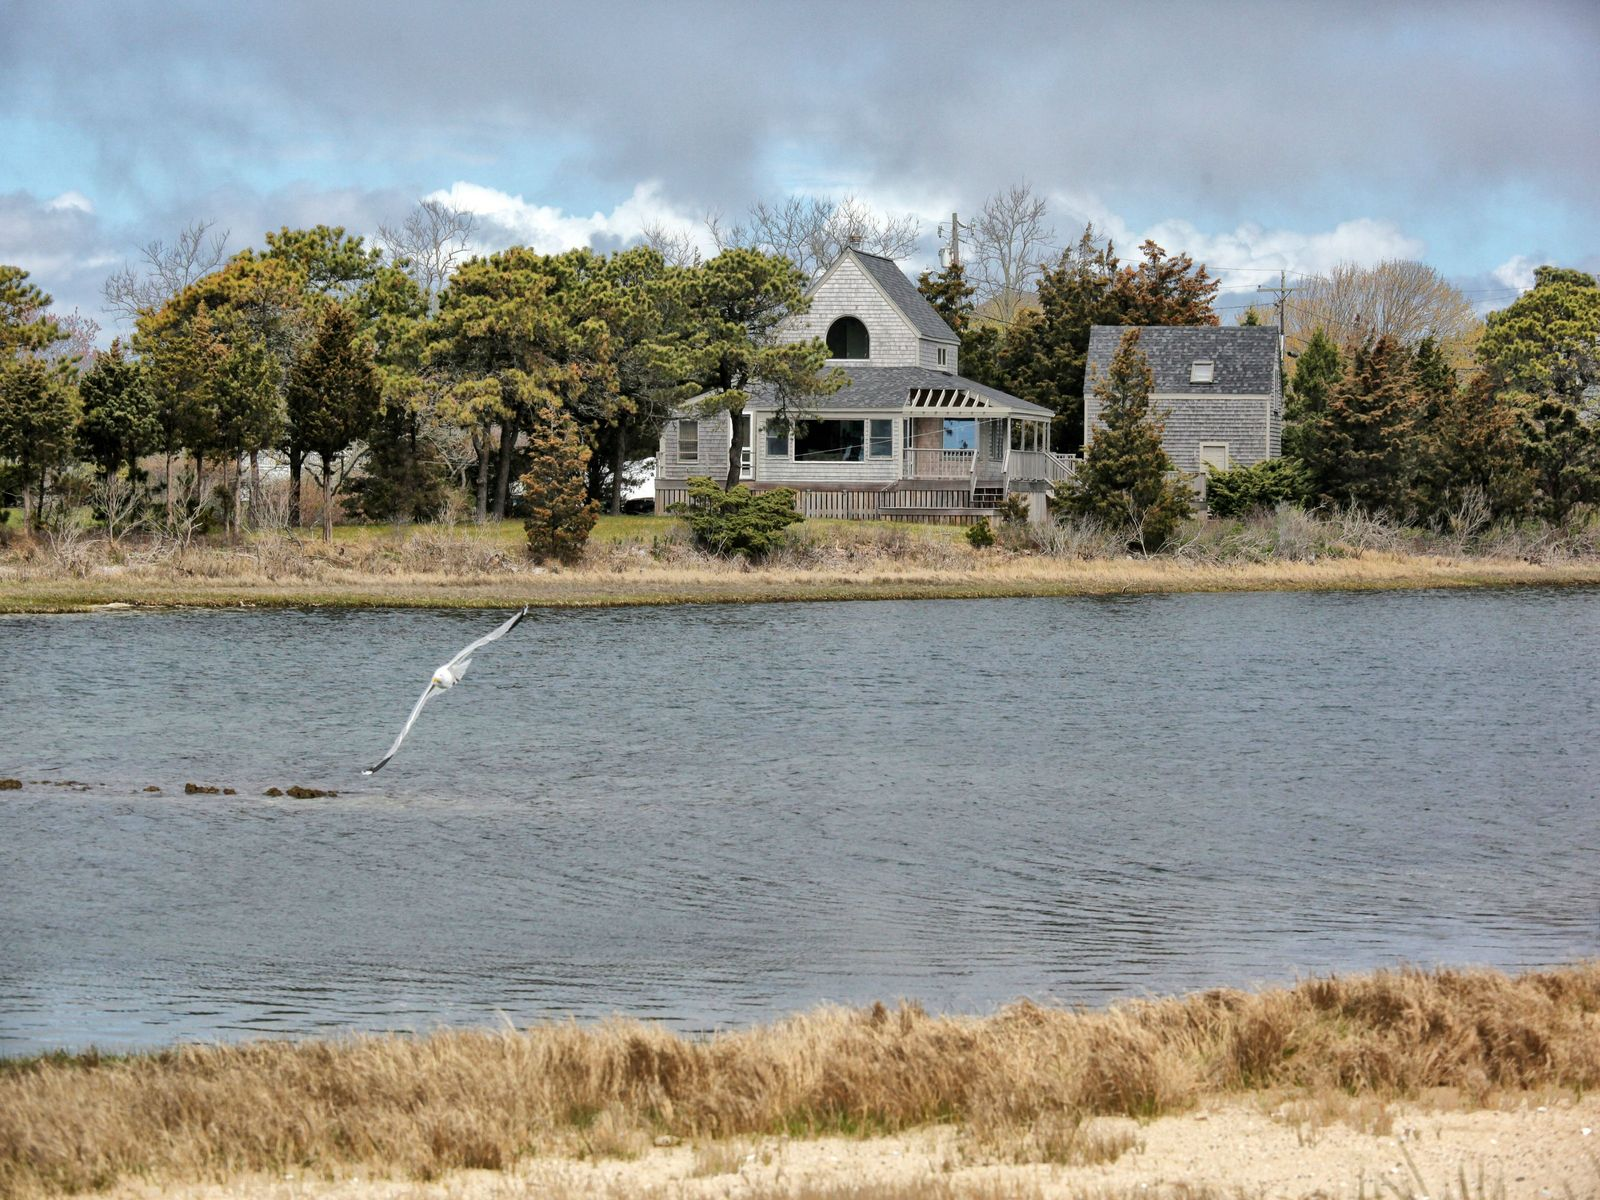 Waterfront Contemporary Cape, East Falmouth MA Single Family Home - Cape Cod Real Estate